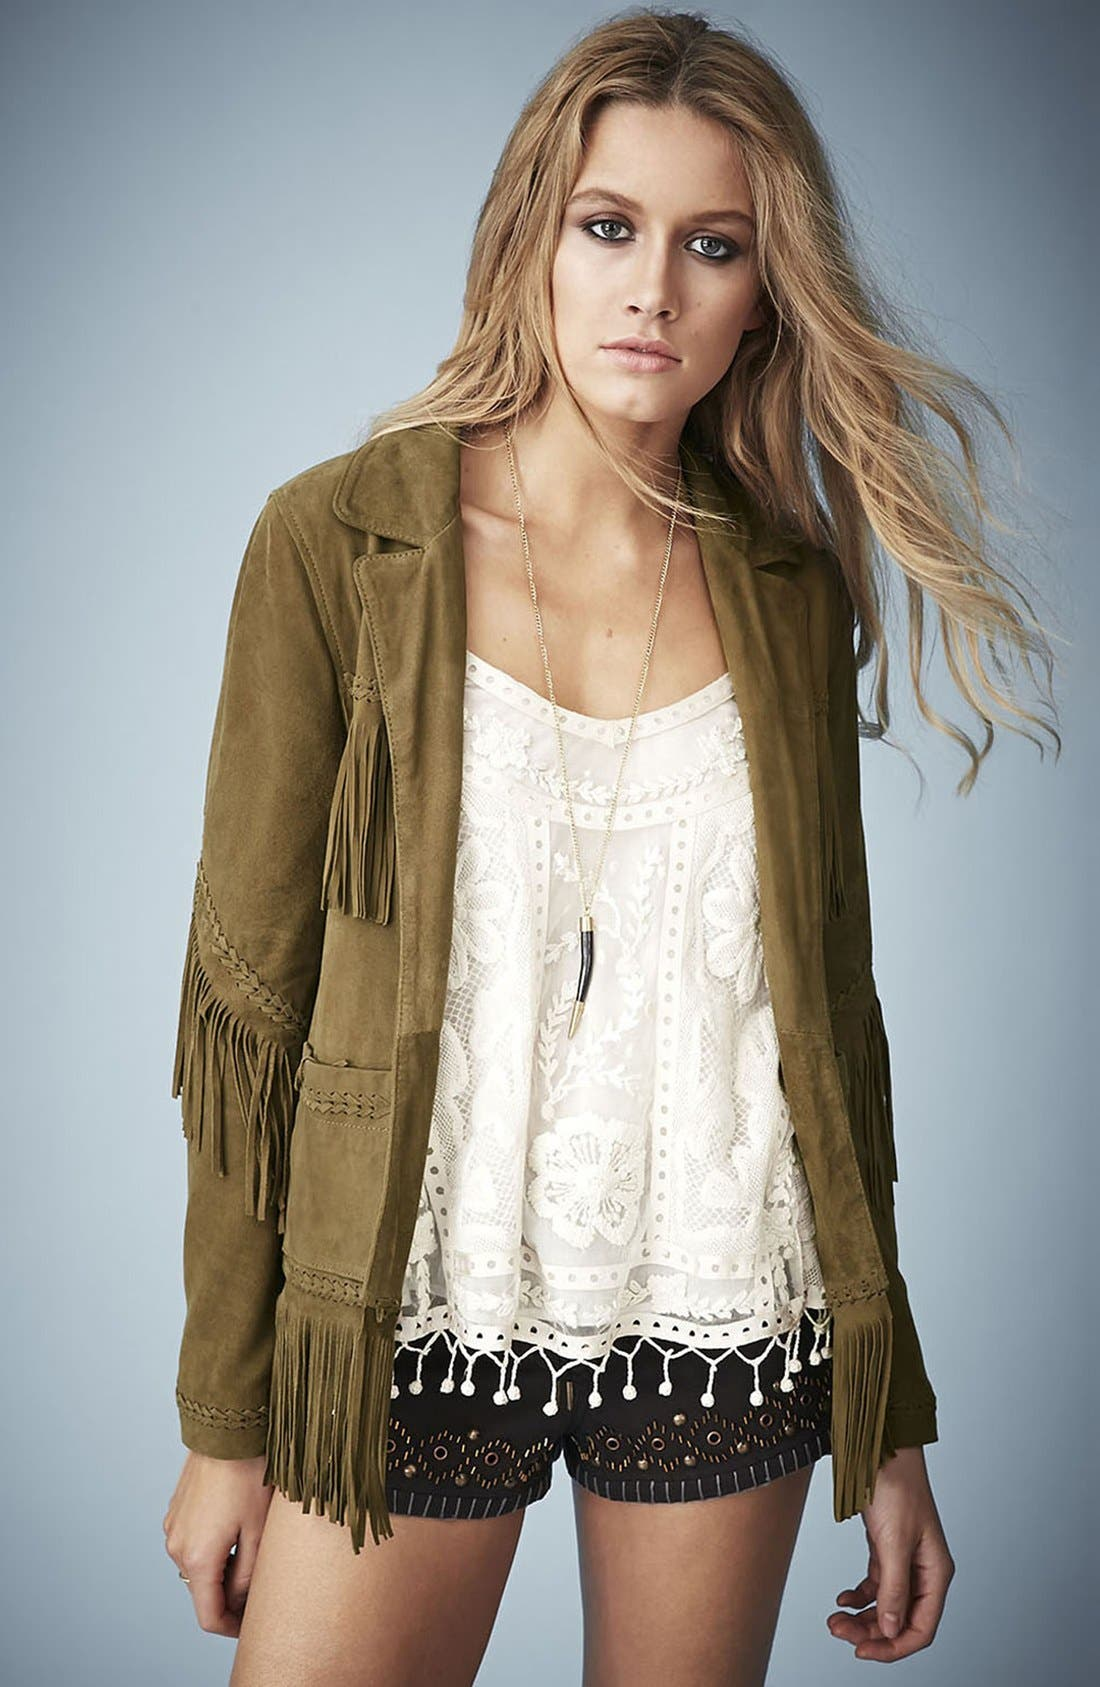 Kate Moss for Topshop Fringed Suede Jacket,                             Main thumbnail 1, color,                             Khaki